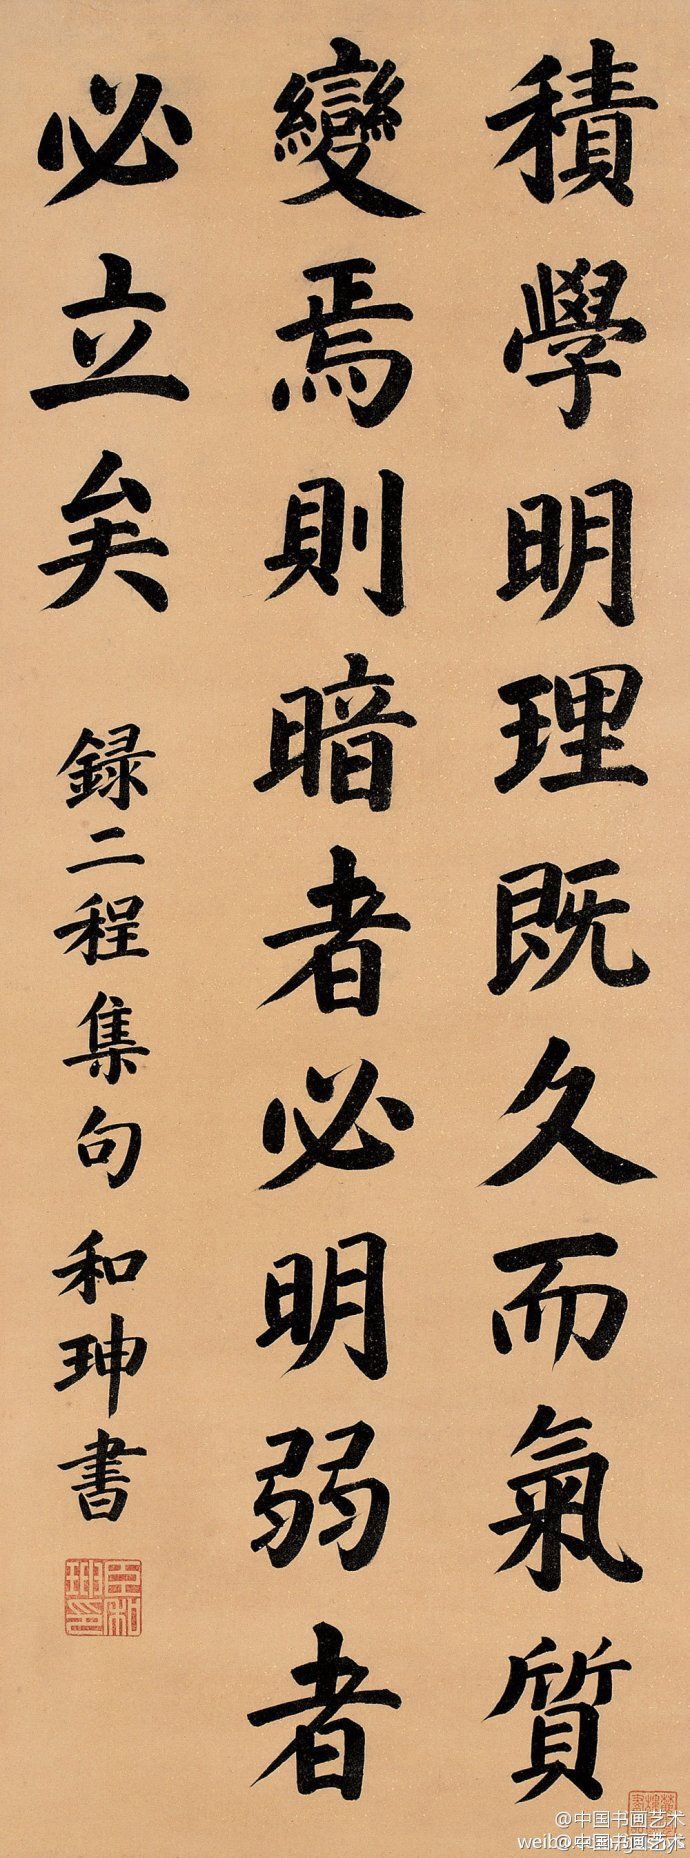 The 37 best Things to Calligraph images on Pinterest | Chinese ...